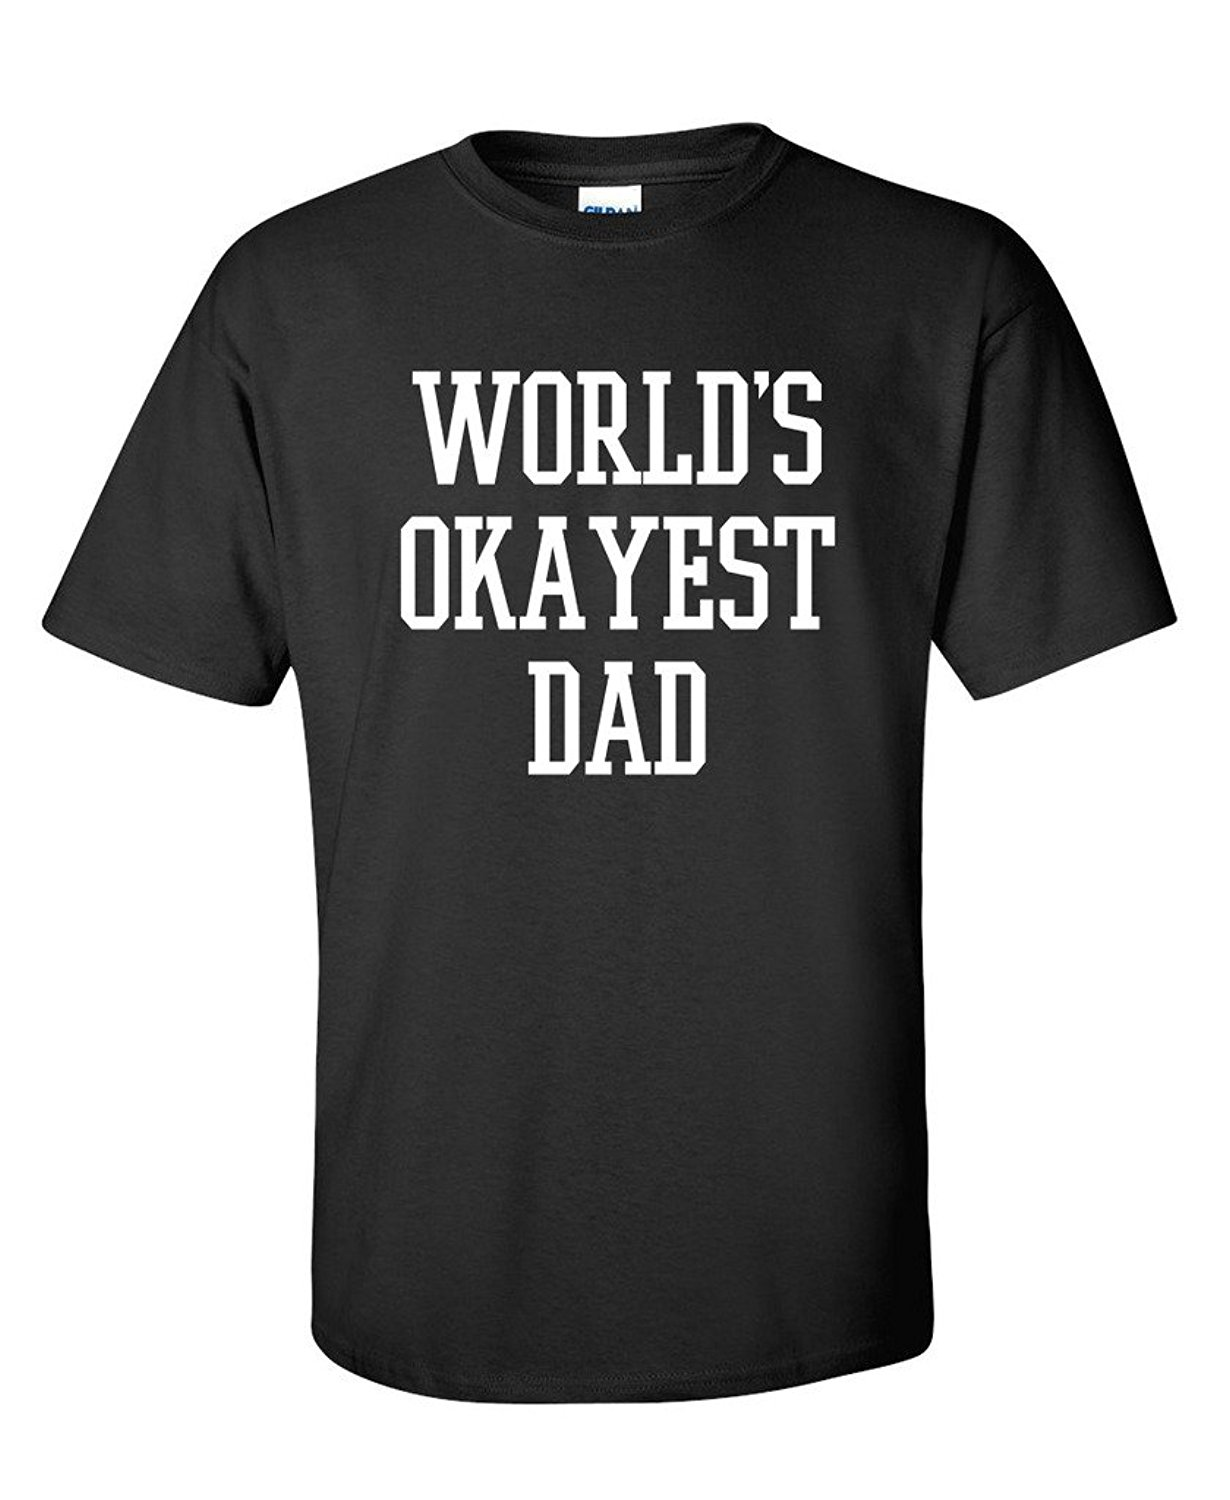 Worlds Okayest Dad Fathers Day for Dad Gift Mens Sarcastic Funny T Shirt